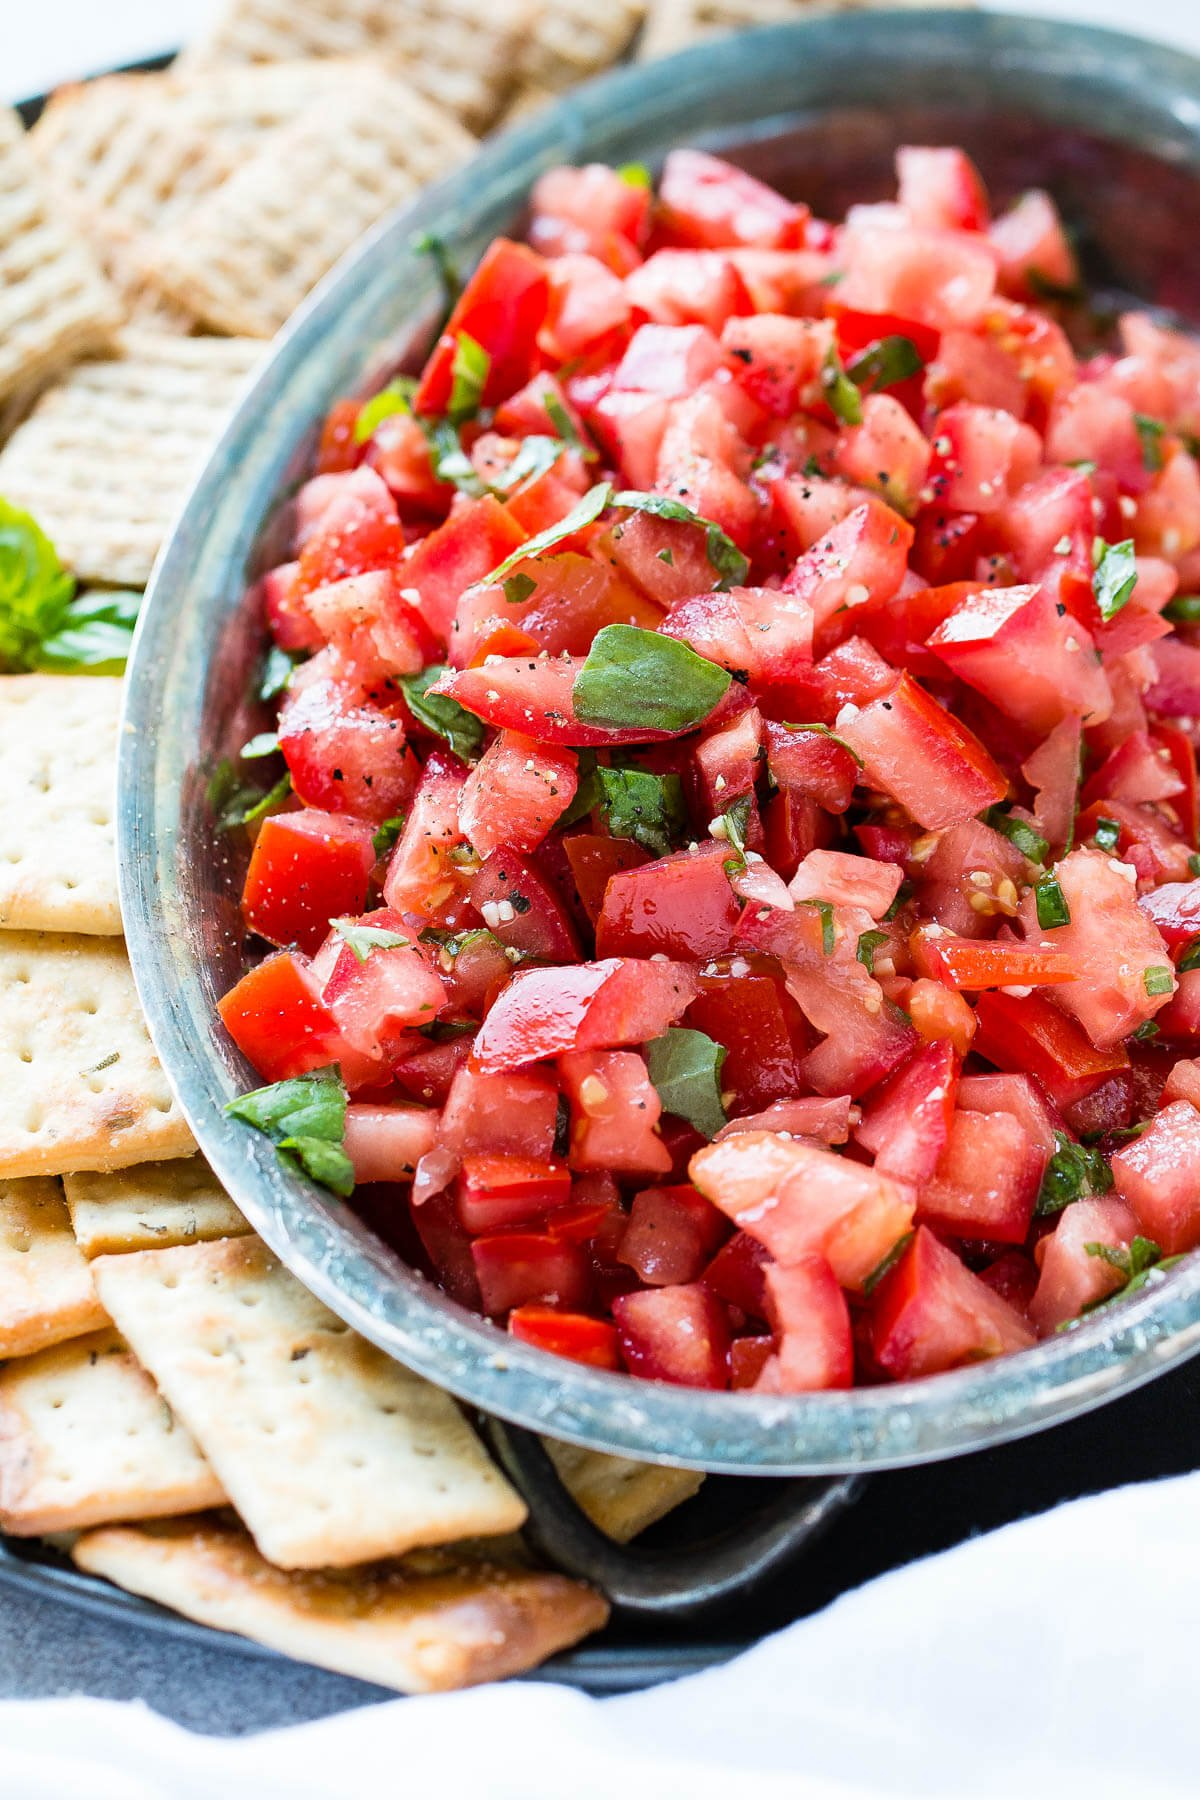 It doesn't take traveling to Italy to know that the simple, classic bruschetta appetizer recipe is the perfect way to use summer tomatoes or impress holiday guests. ohsweetbasil.com